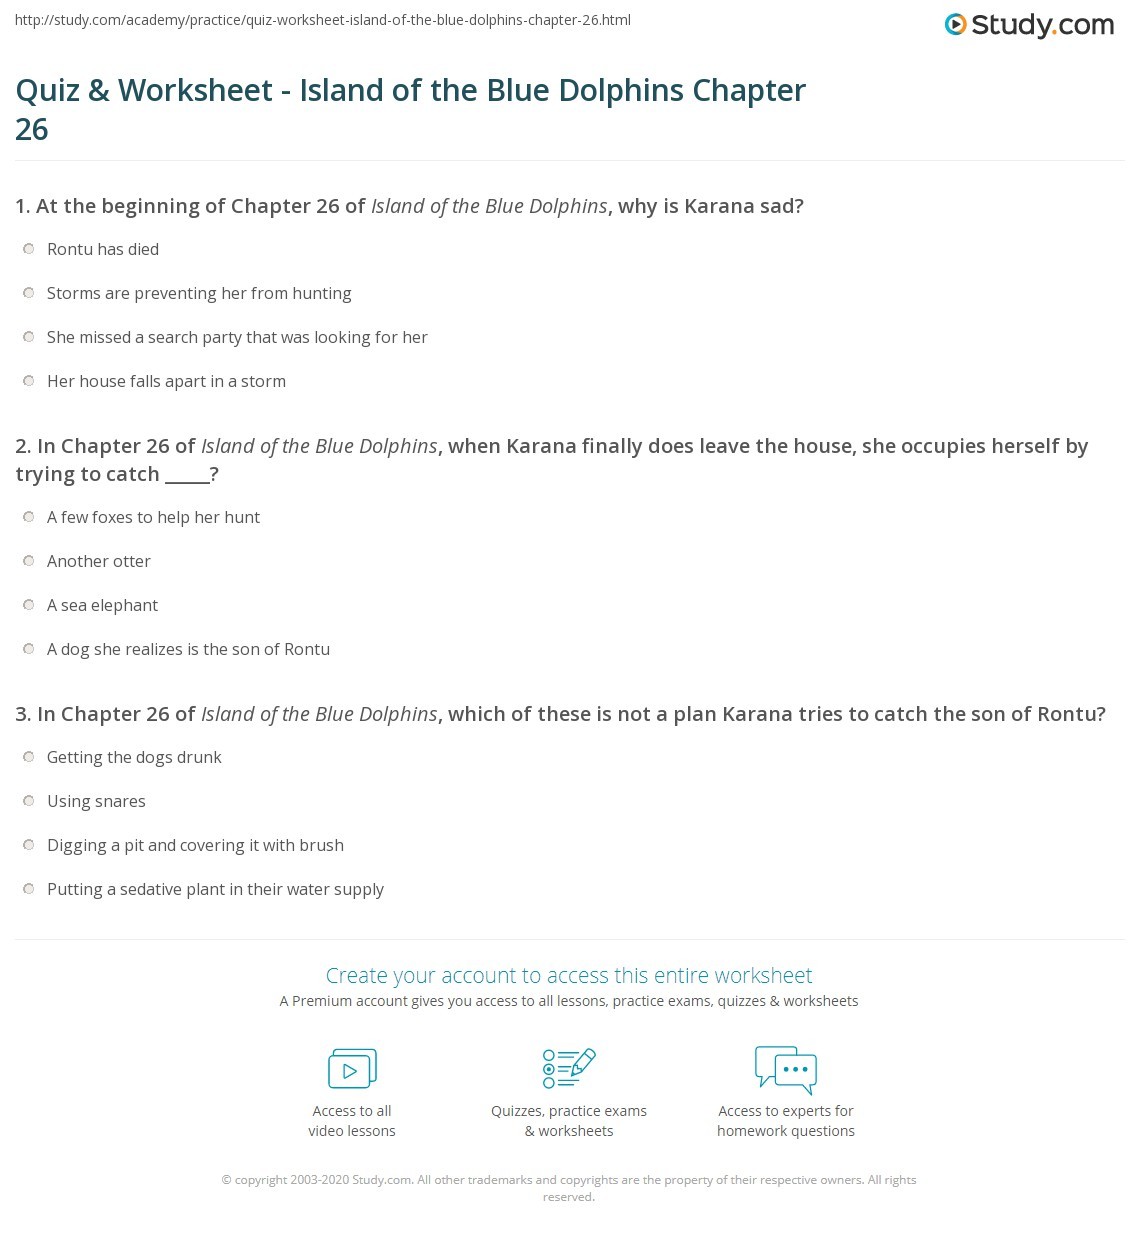 Quiz Worksheet Island Of The Blue Dolphins Chapter 26